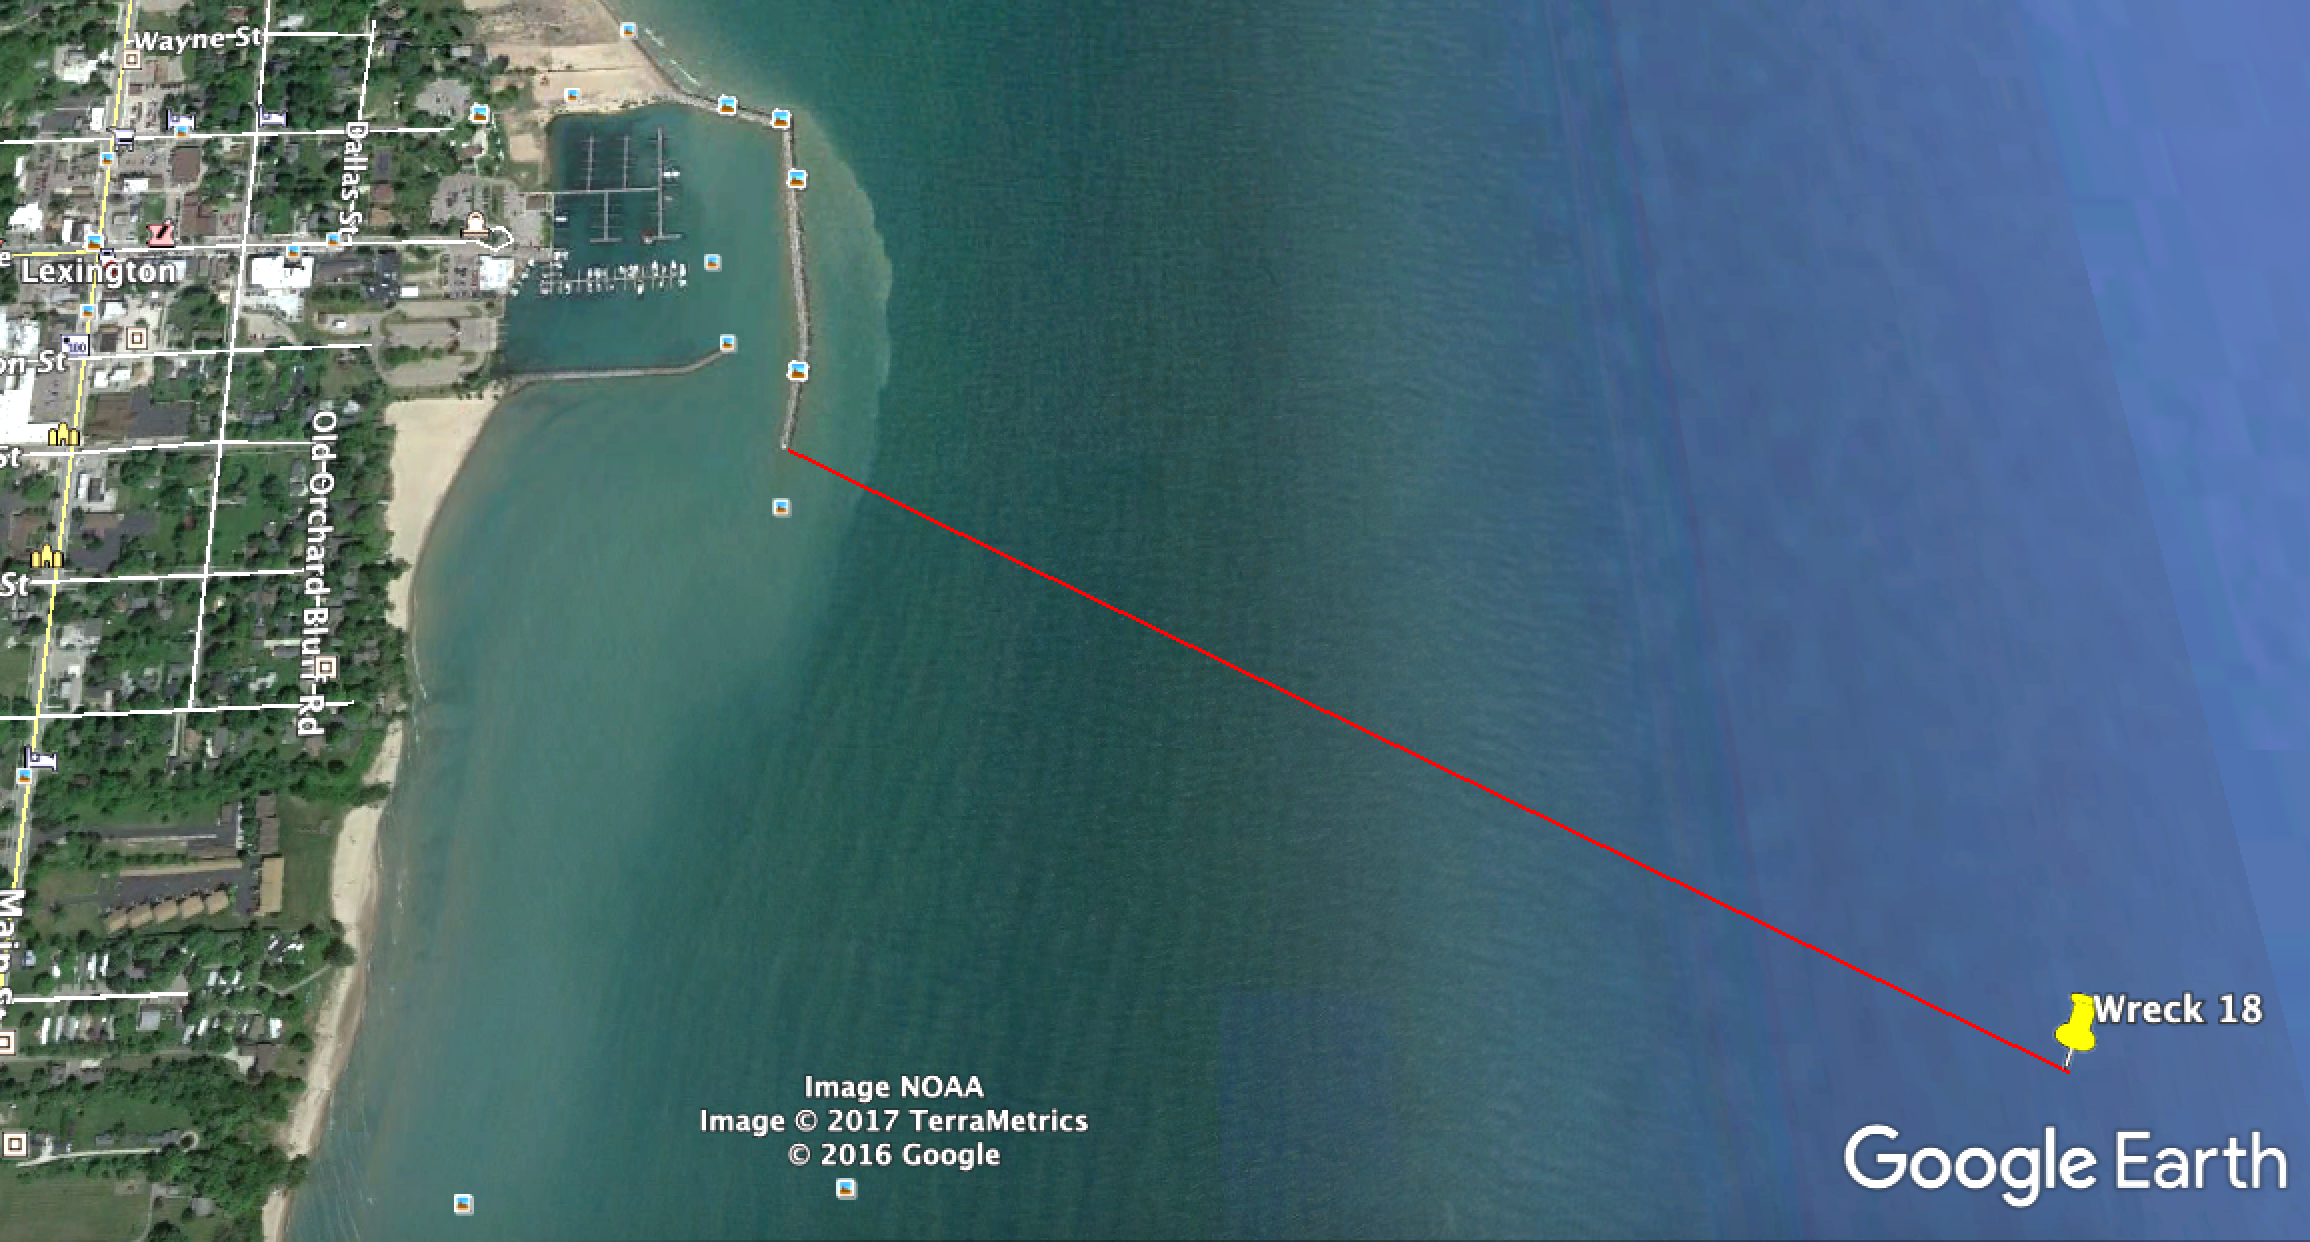 Wreck is 3,900 ft. from the Lexington breakwater end on a bearing of 116 degrees. Check Maritime Database for vessel details. (No Google aerial image is available.)